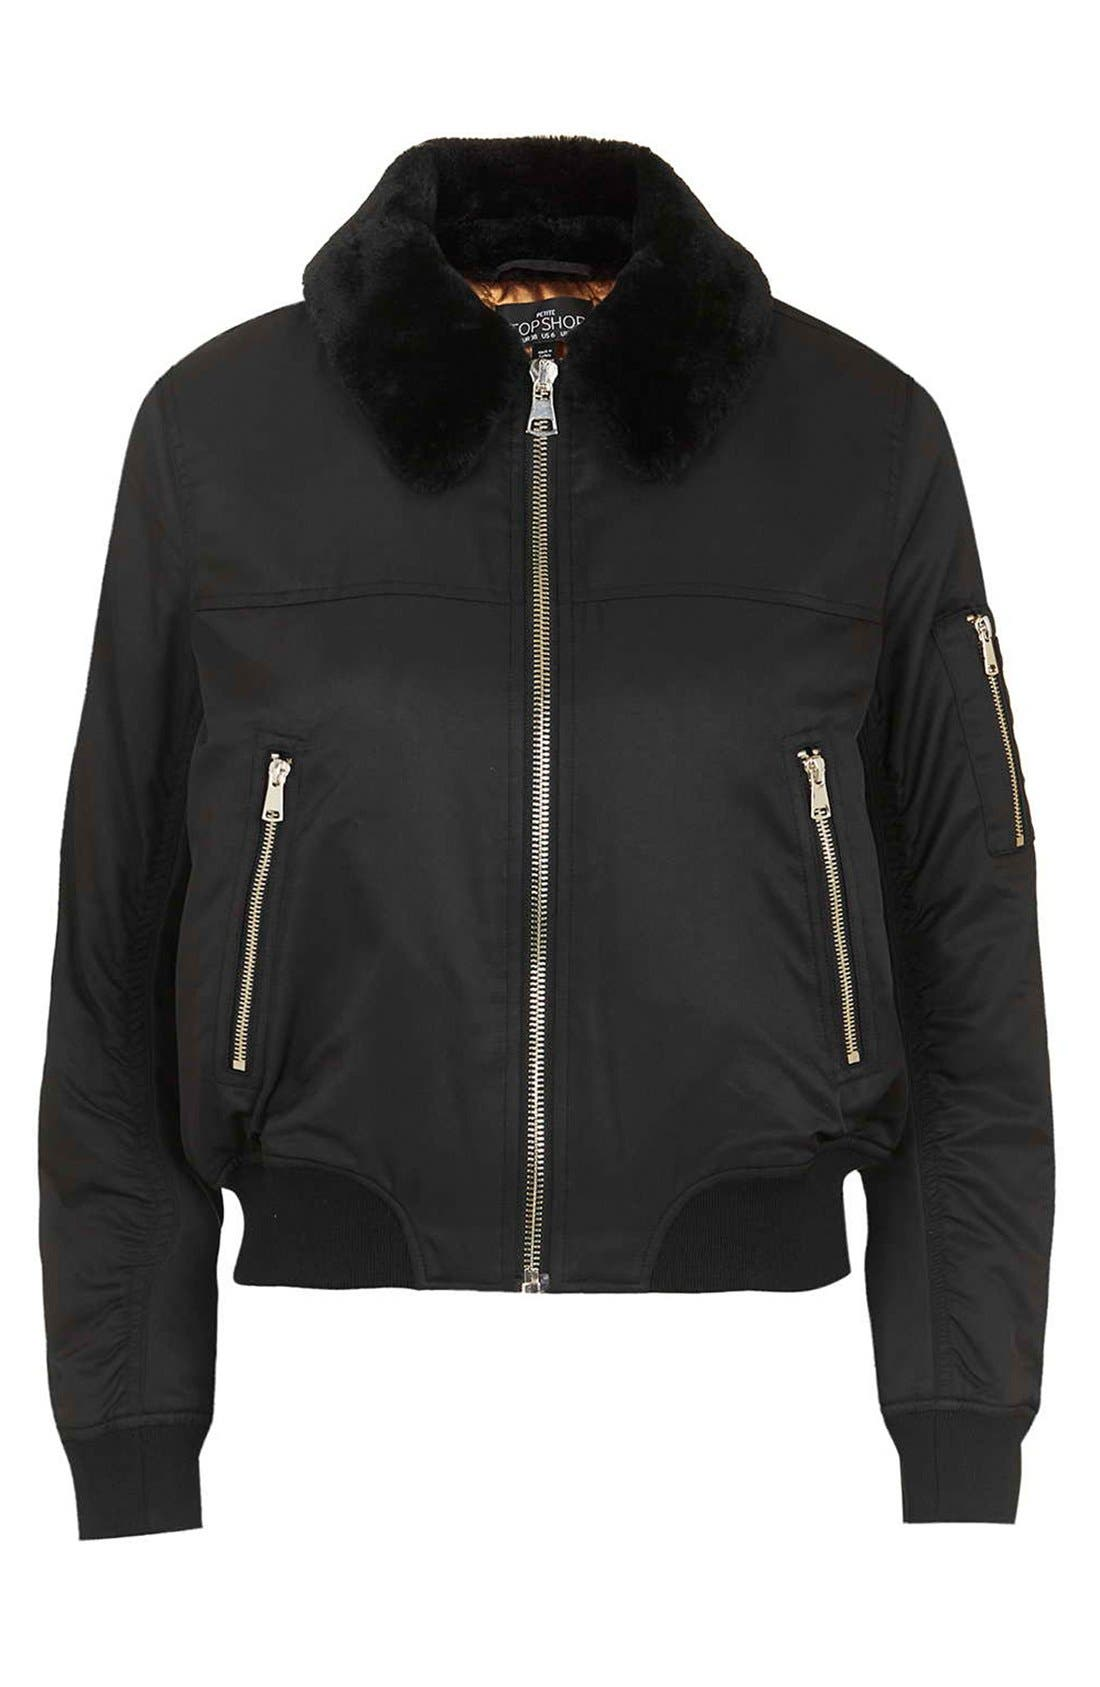 Alternate Image 4  - Topshop 'MA1' Bomber Jacket with Faux Fur Collar (Petite)